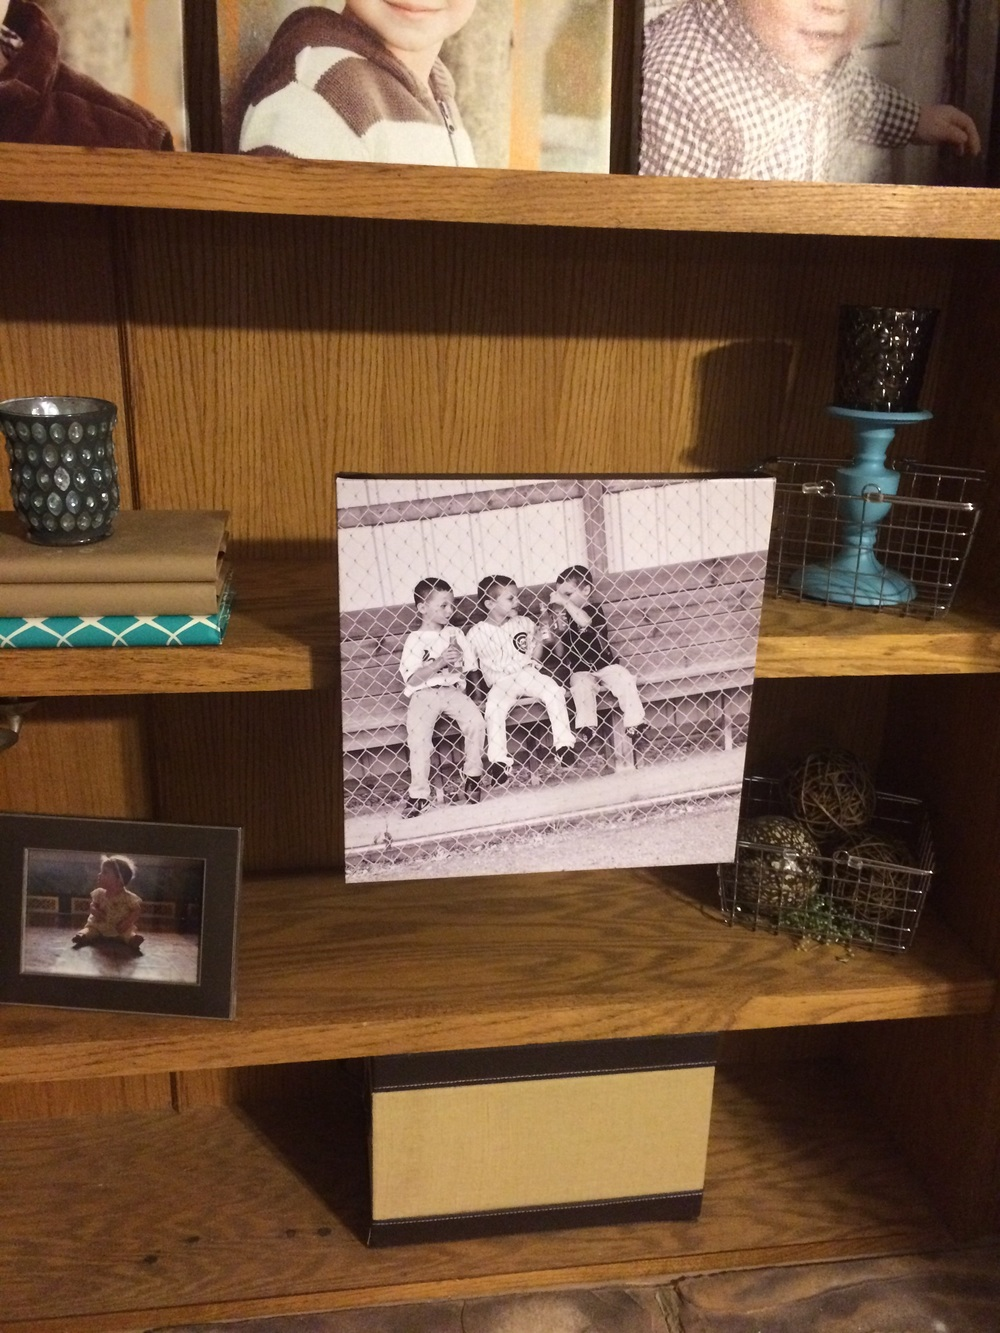 Photographs attached to the front of shelves using Command Strips. || RustopiaConsulting.com